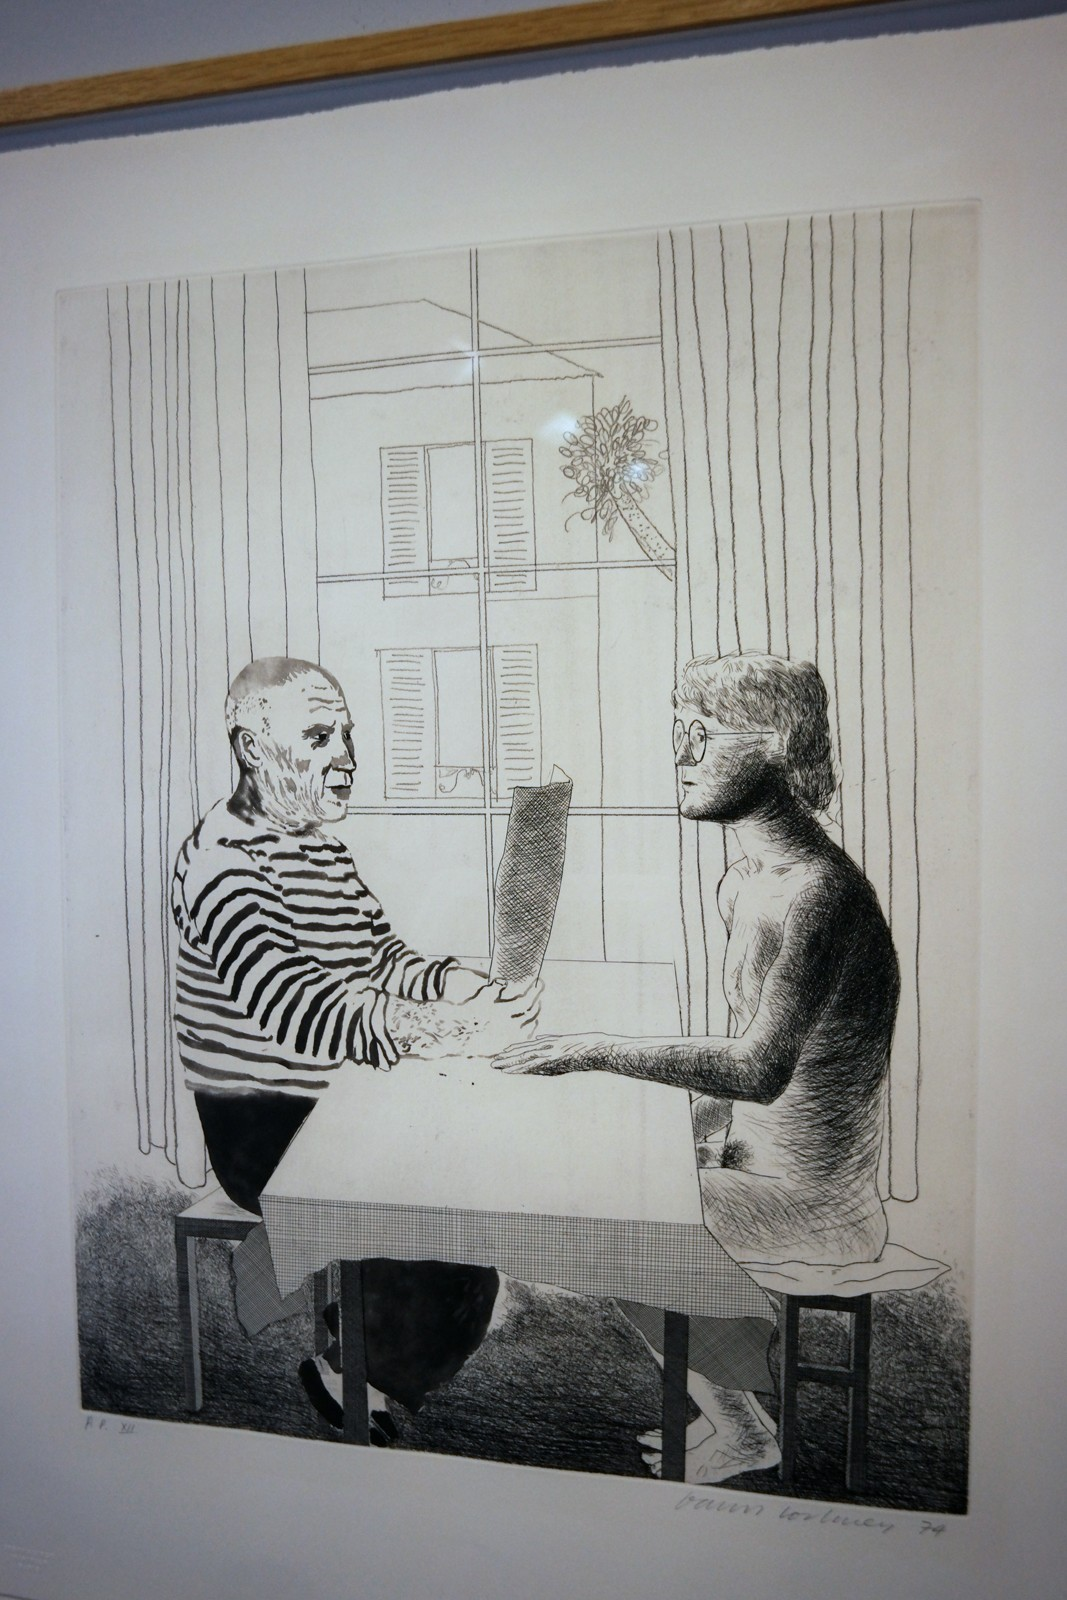 Artist and model, 1973-1974, David Hockney